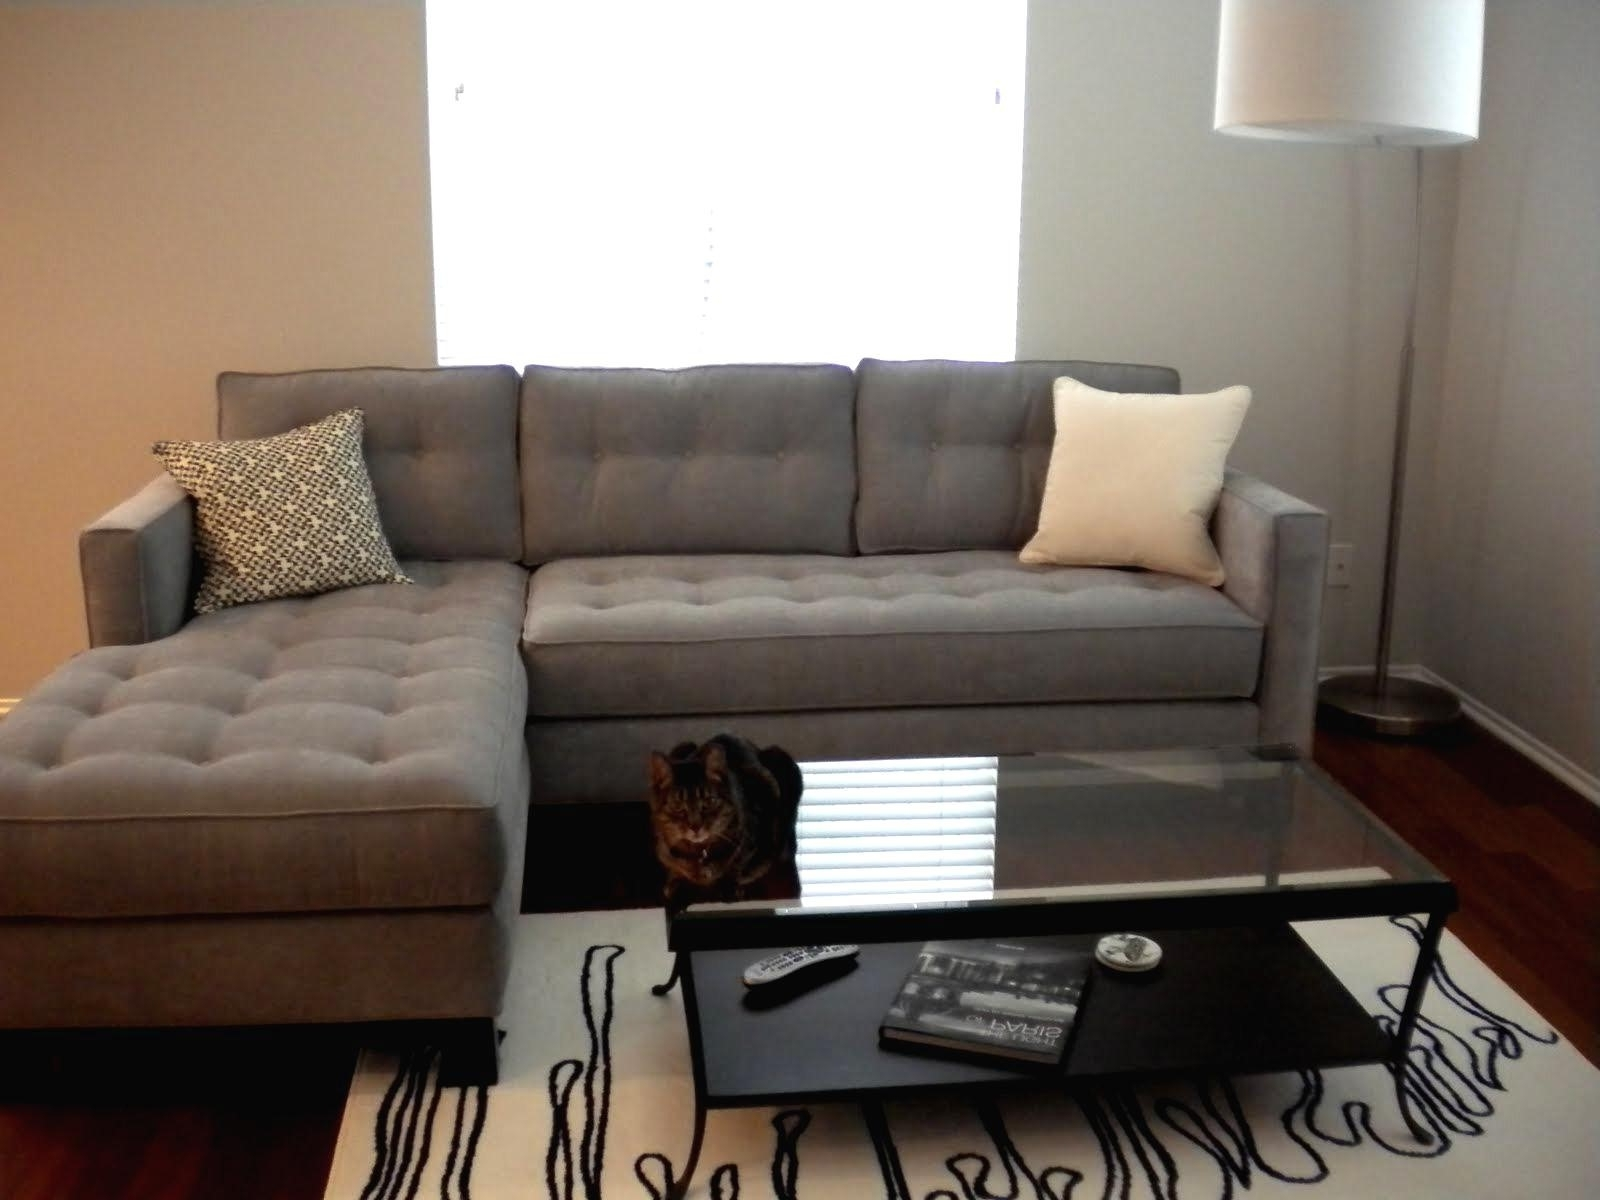 Most Current 80x80 Sectional Sofas Throughout Sofa: Tufted Sectional Sofa With Chaise (View 19 of 20)